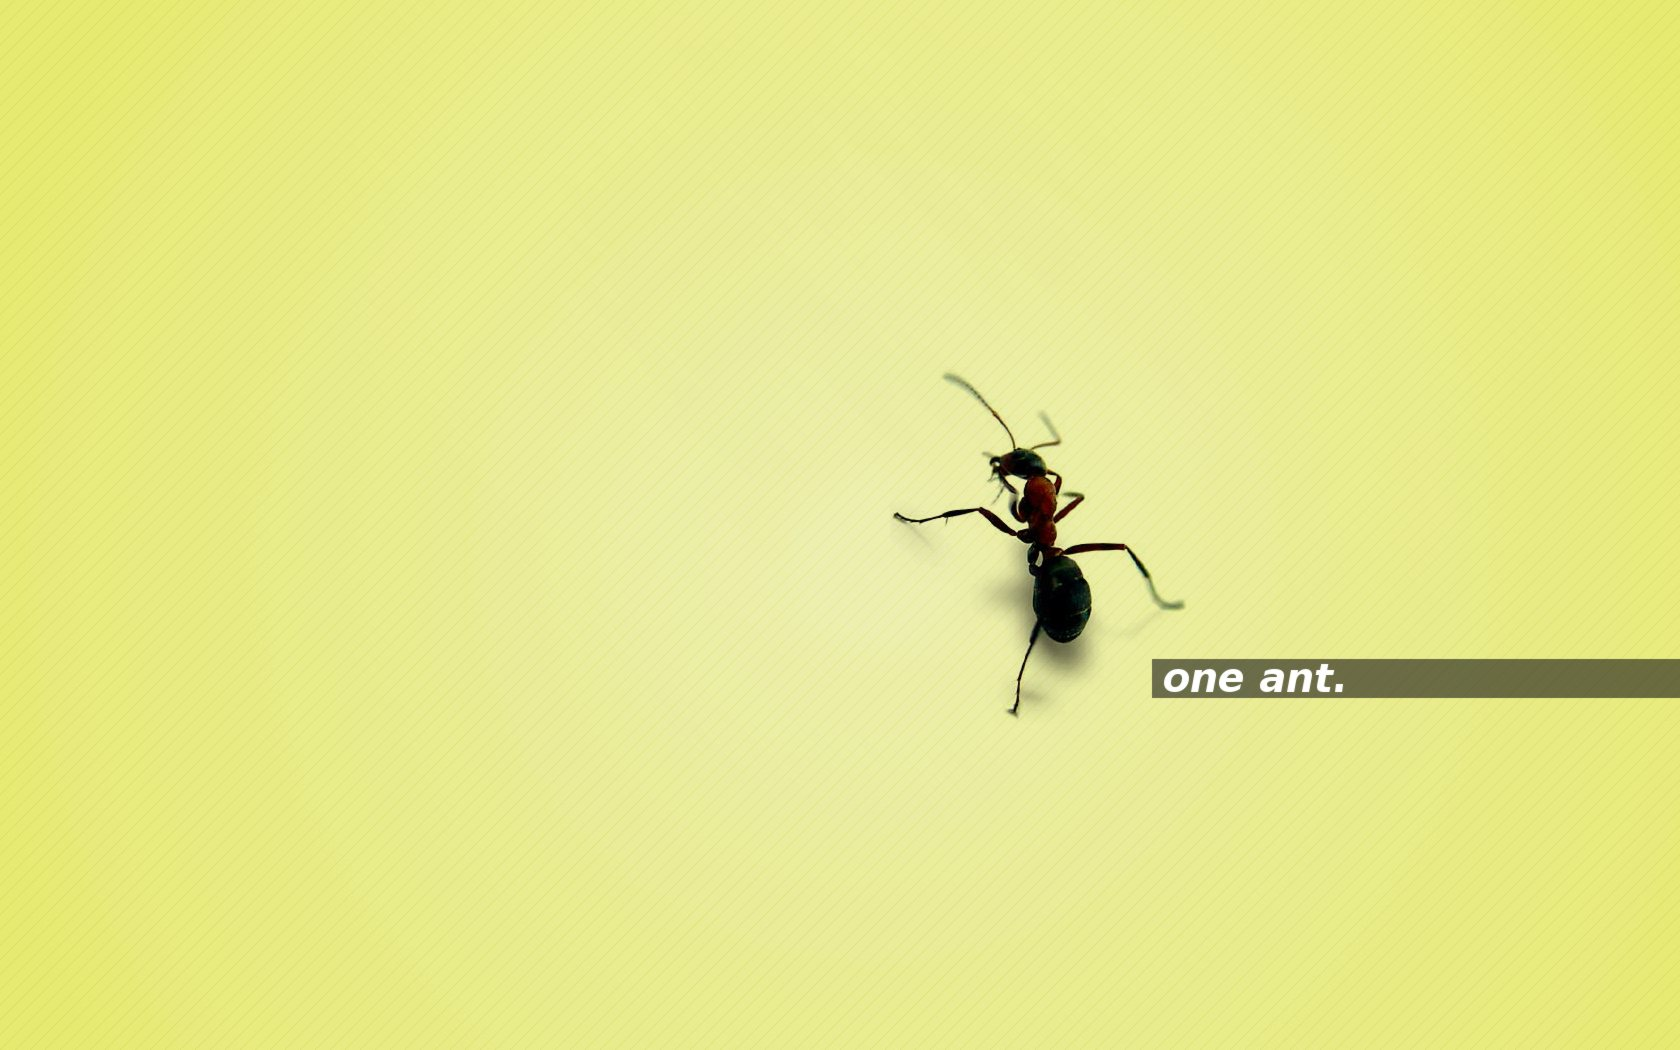 one ant. yellow